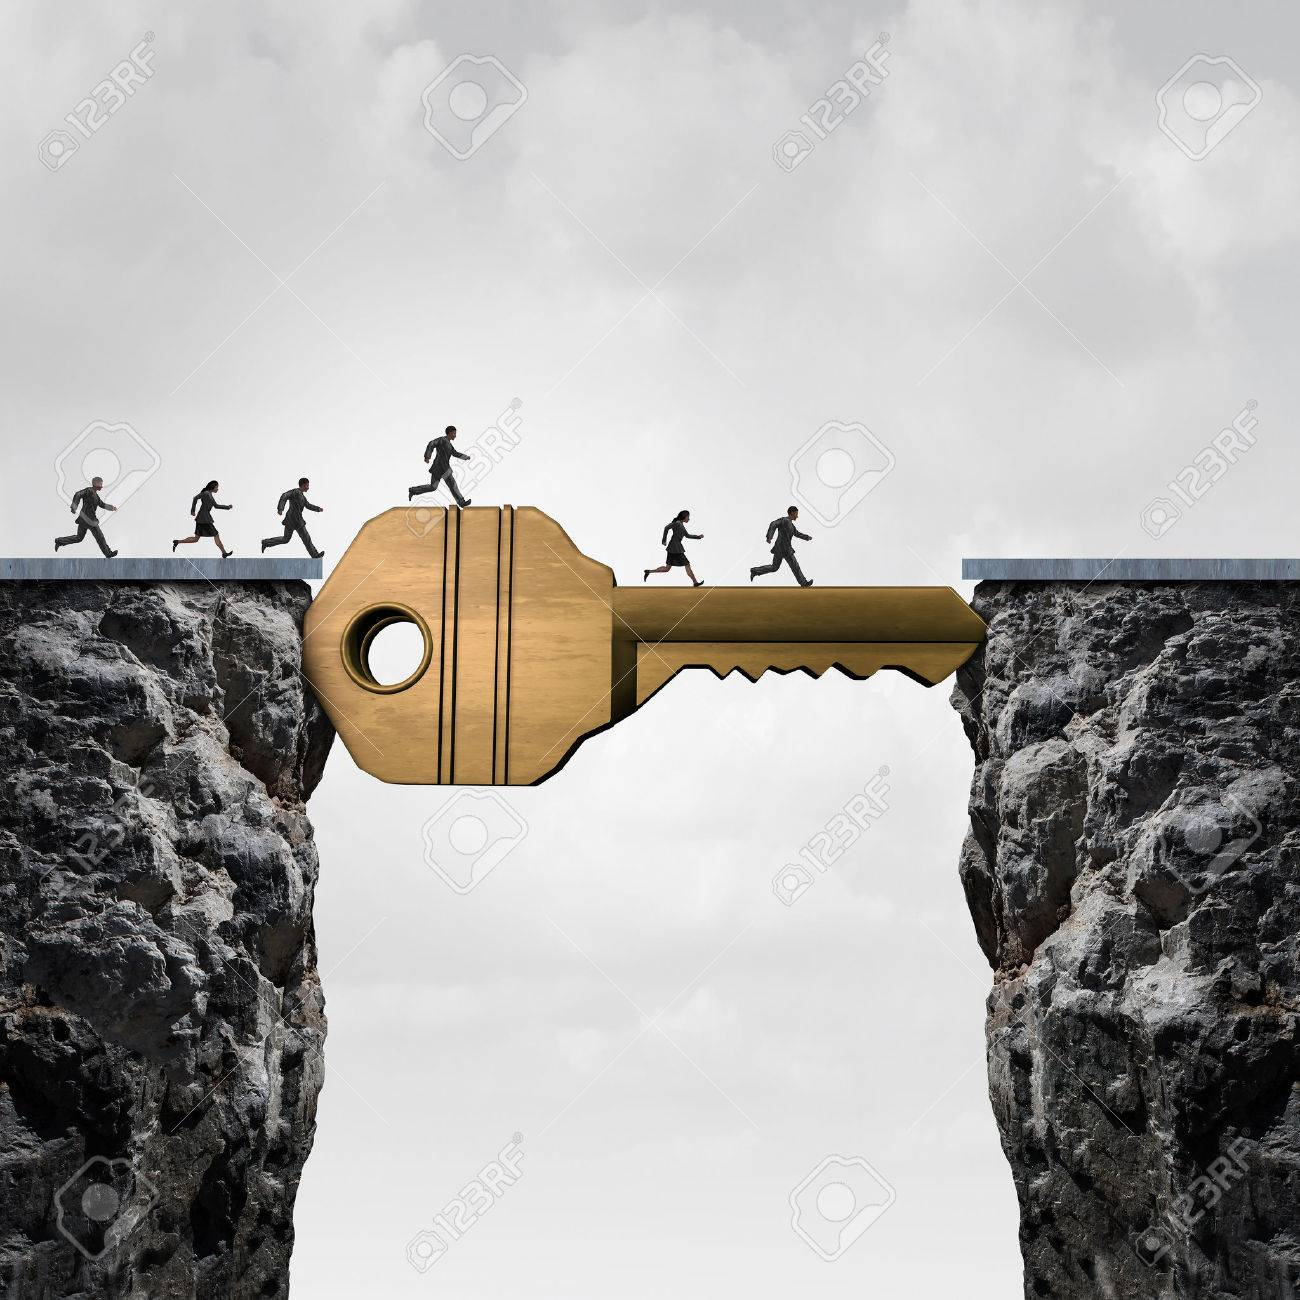 Success key concept as a group of people running across two cliffs with a giant golden brass security object acting as a bridge to reach opportunity with 3D illustration elements. Stock Illustration - 56997796